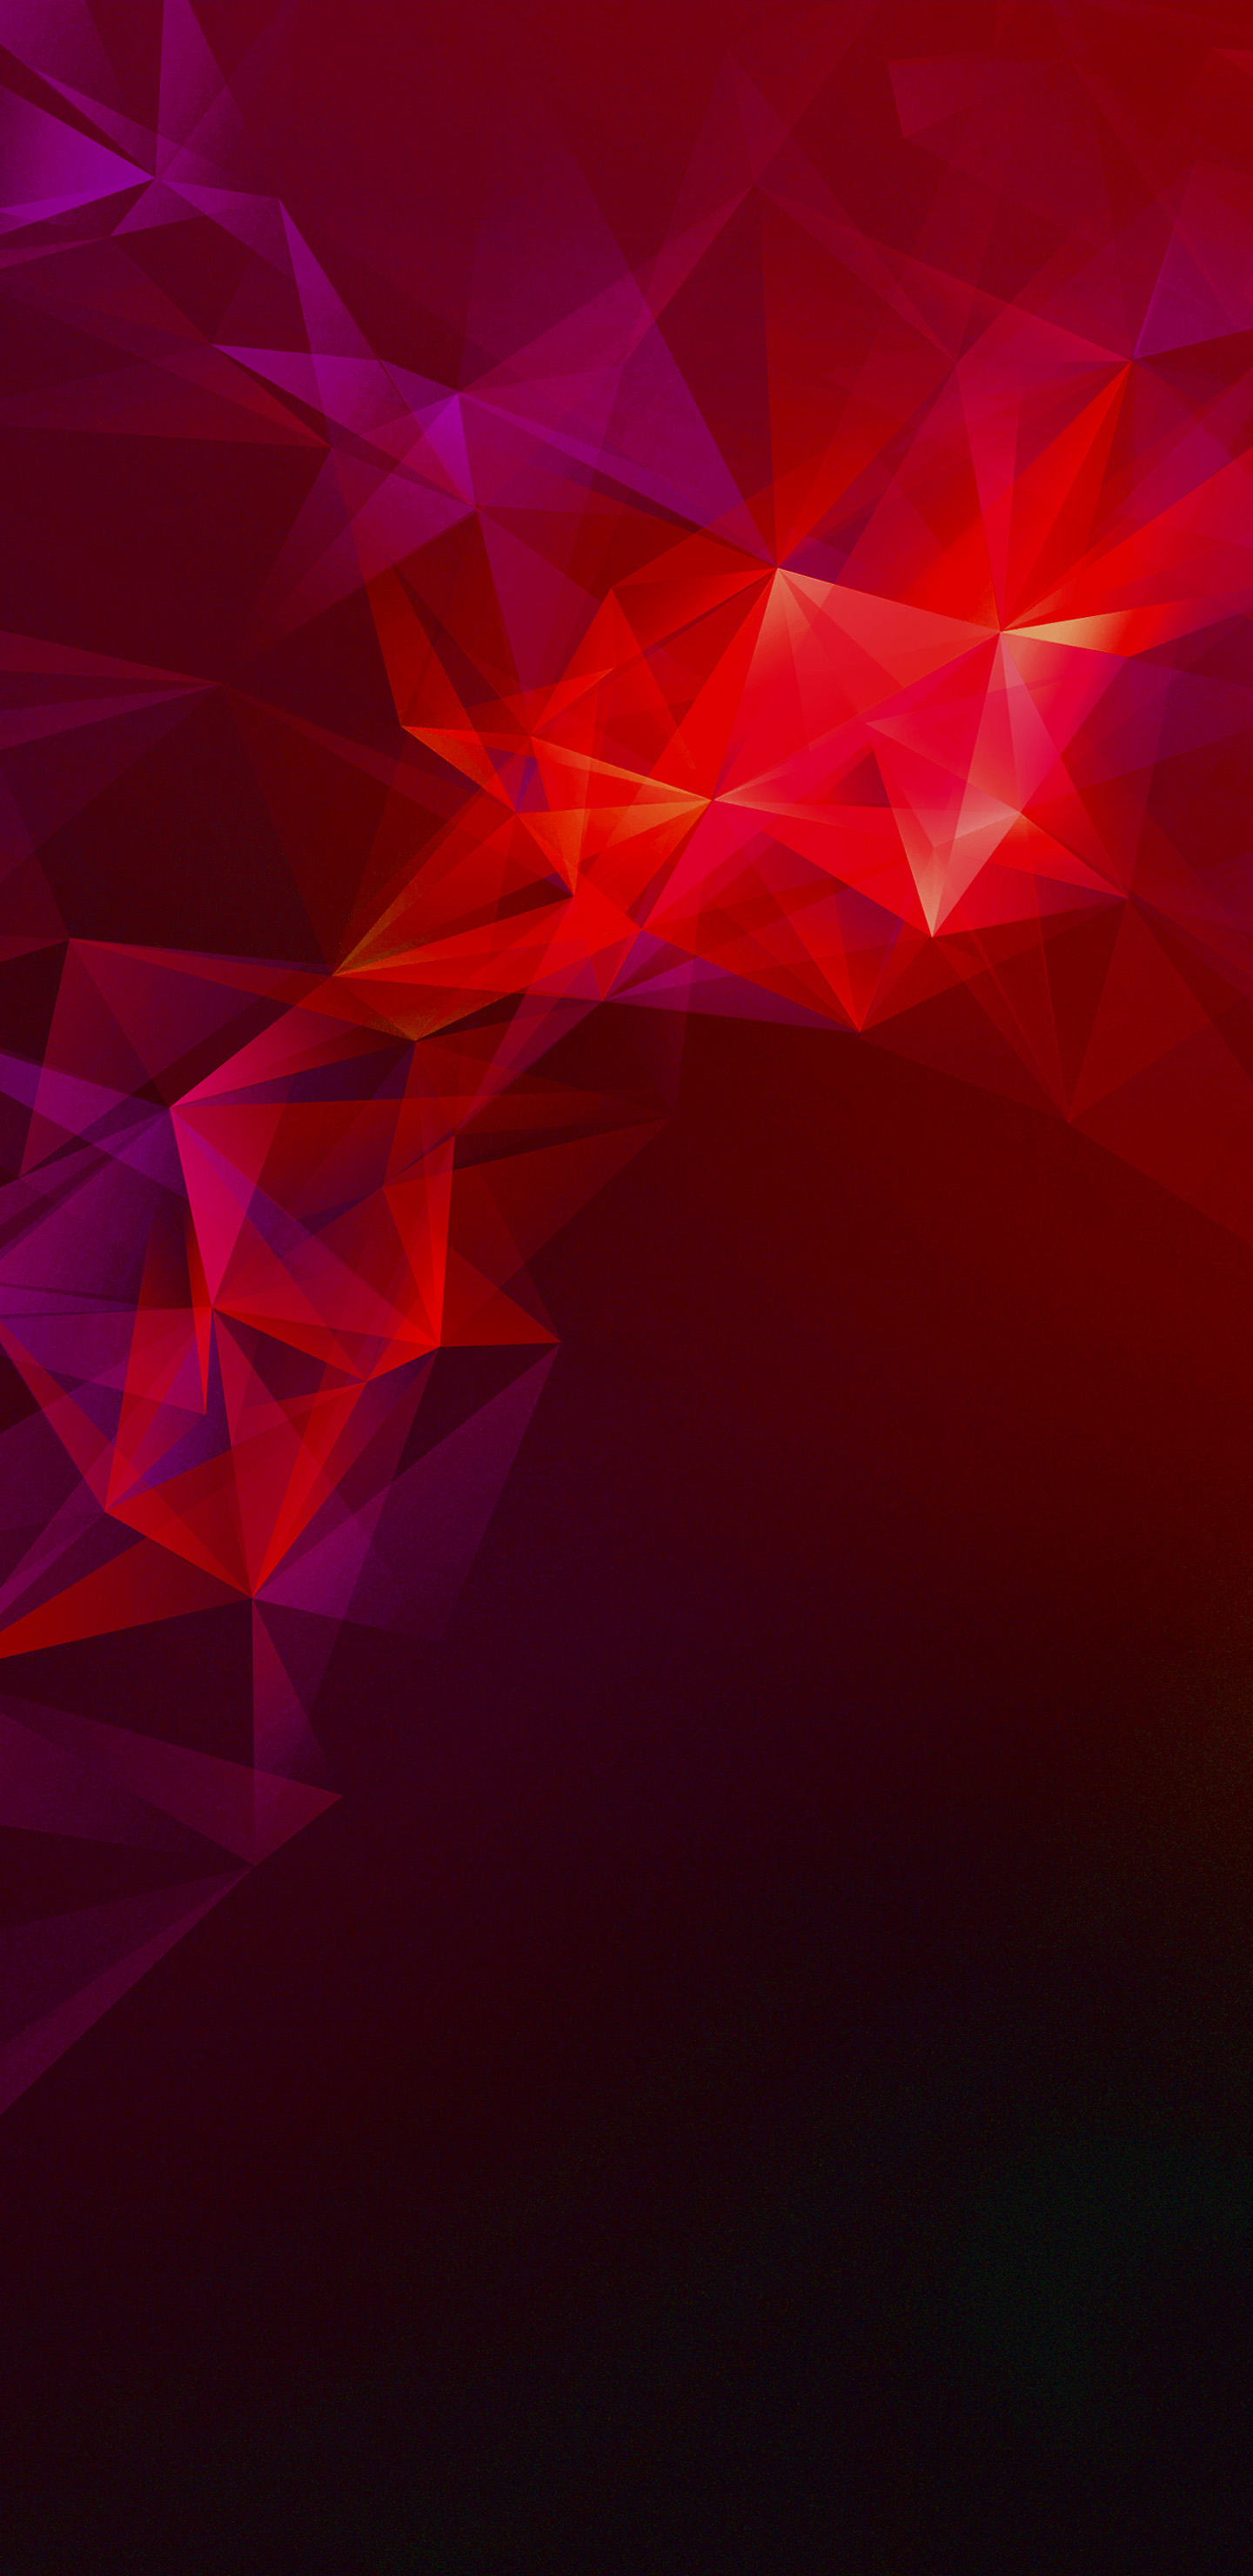 Simple Wallpaper Home Screen Red - Official-Wallpaper-08-of-15-for-Samsung-Galaxy-S9-and-Samsung-Galaxy-S9-with-Dark-Silver-Polygons  You Should Have_901842.jpg?w\u003d292